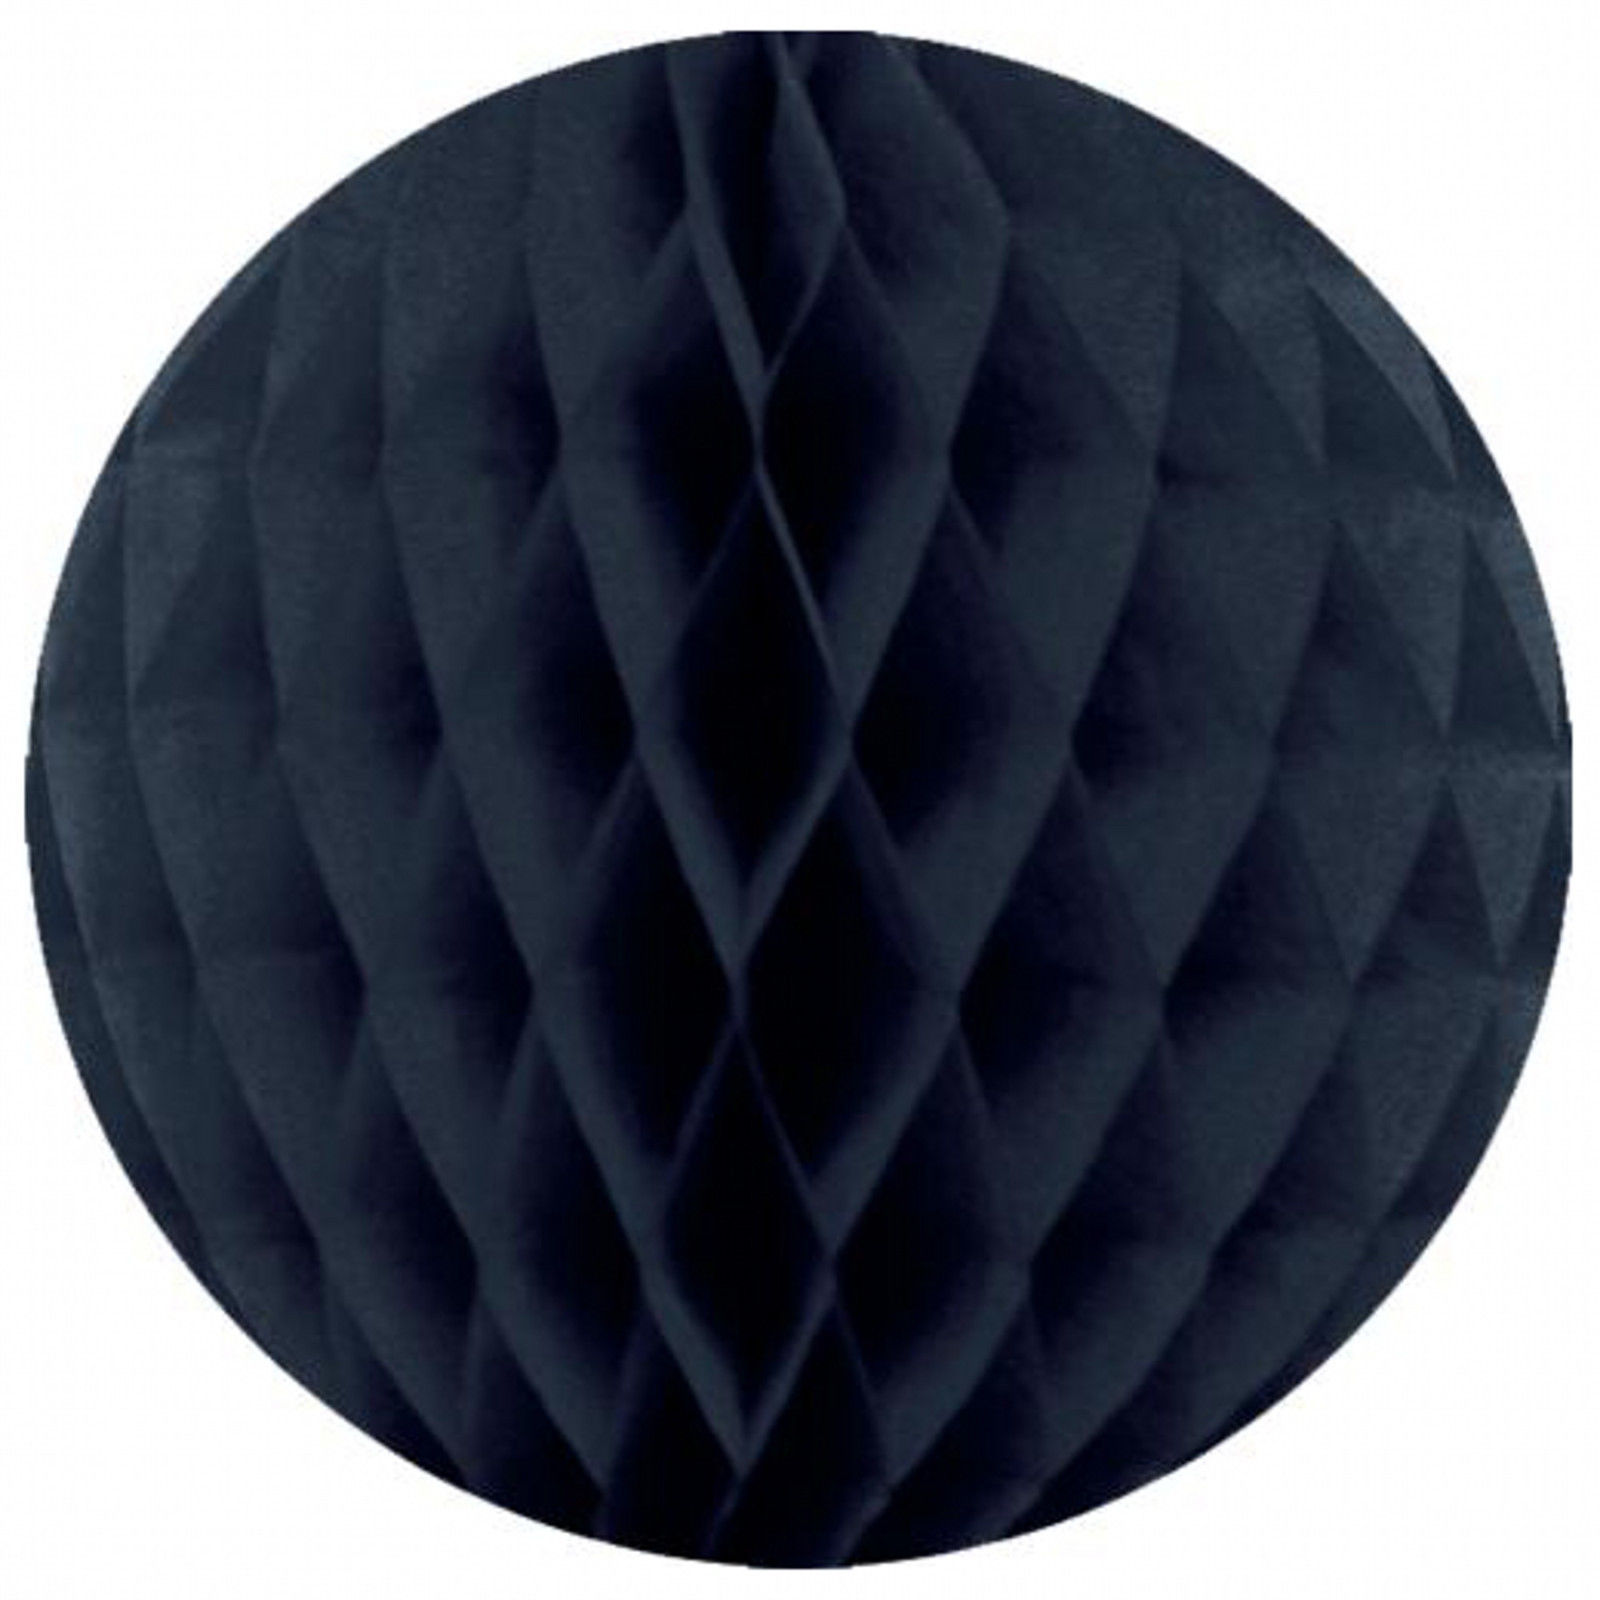 "3 pieces honeycomb balls paper decoration 2 black and 1 navy blue 12"" dia"